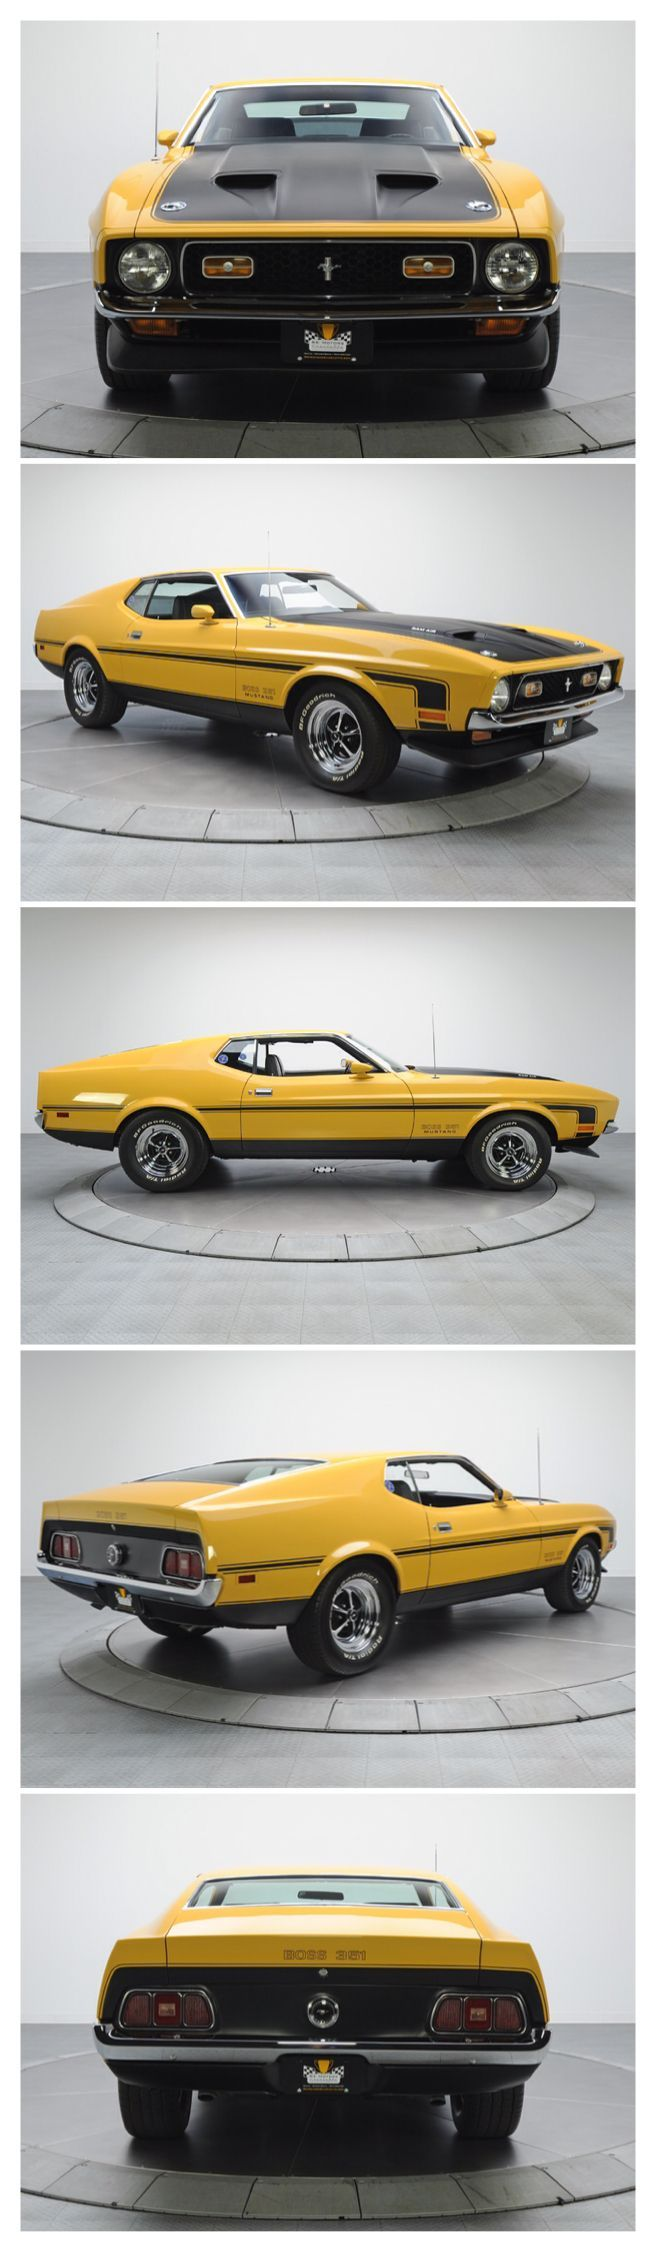 """1971 Ford Mustang Boss Visit """" rel=""""nofollow"""" target=""""_blank""""> to you by #HouseofInsurance #NeedcarInsinEugeneOregon - https://www.luxury.guugles.com/1971-ford-mustang-boss-visit-relnofollow-target_blank-to-you-by-houseofinsurance-needcarinsineugeneoregon/"""